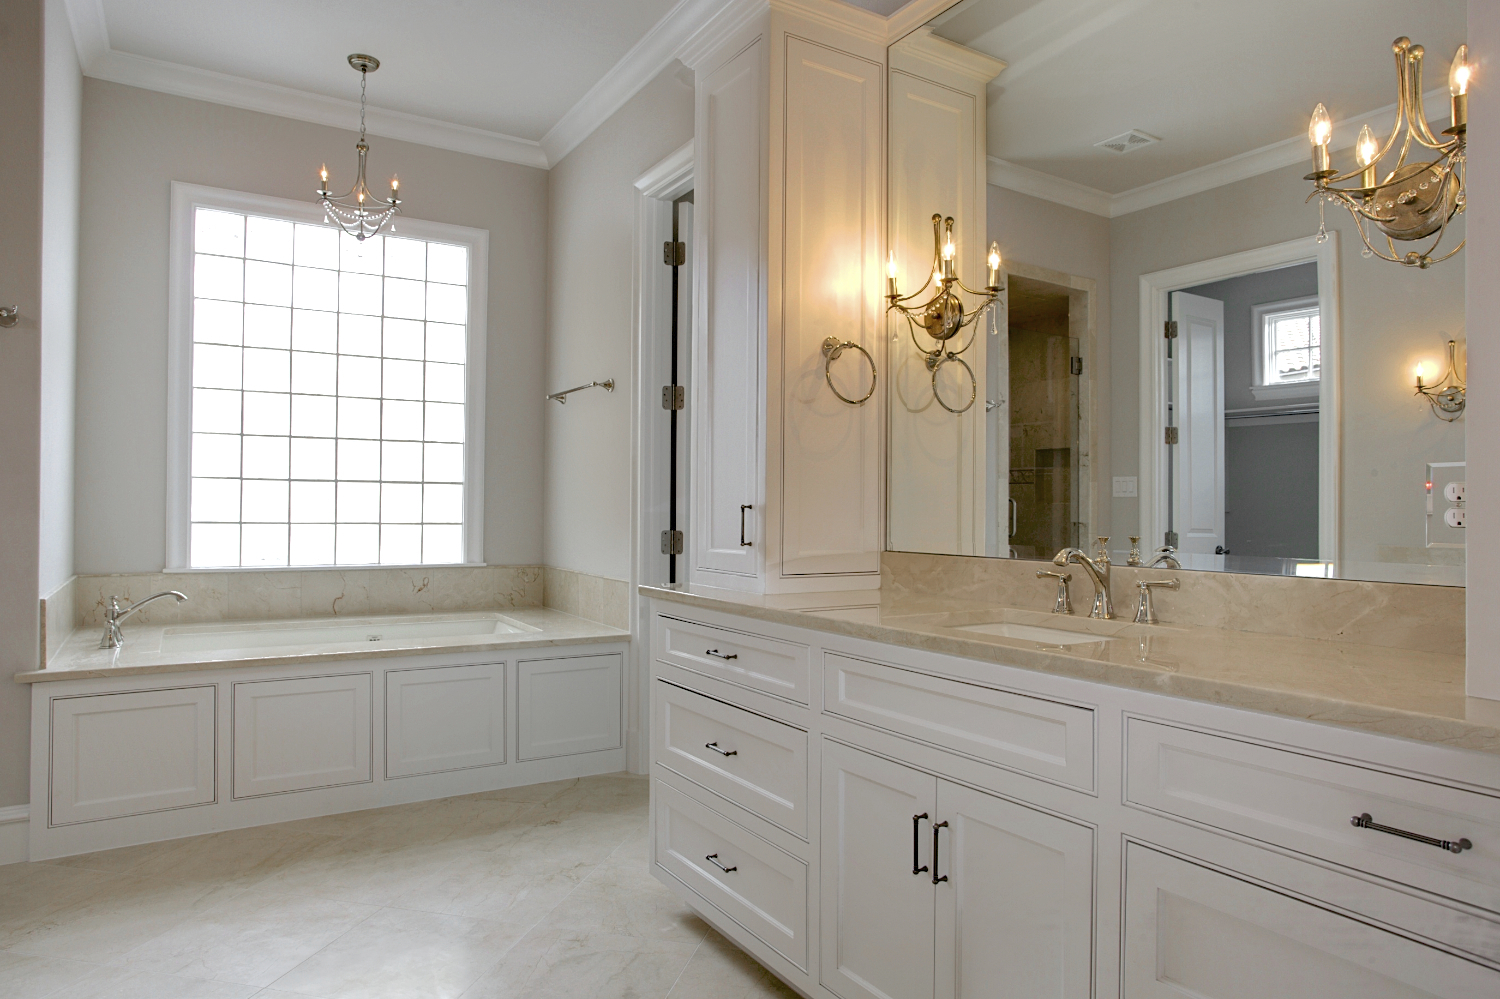 bathroom remodeling in fort worth, texas with robinson builders